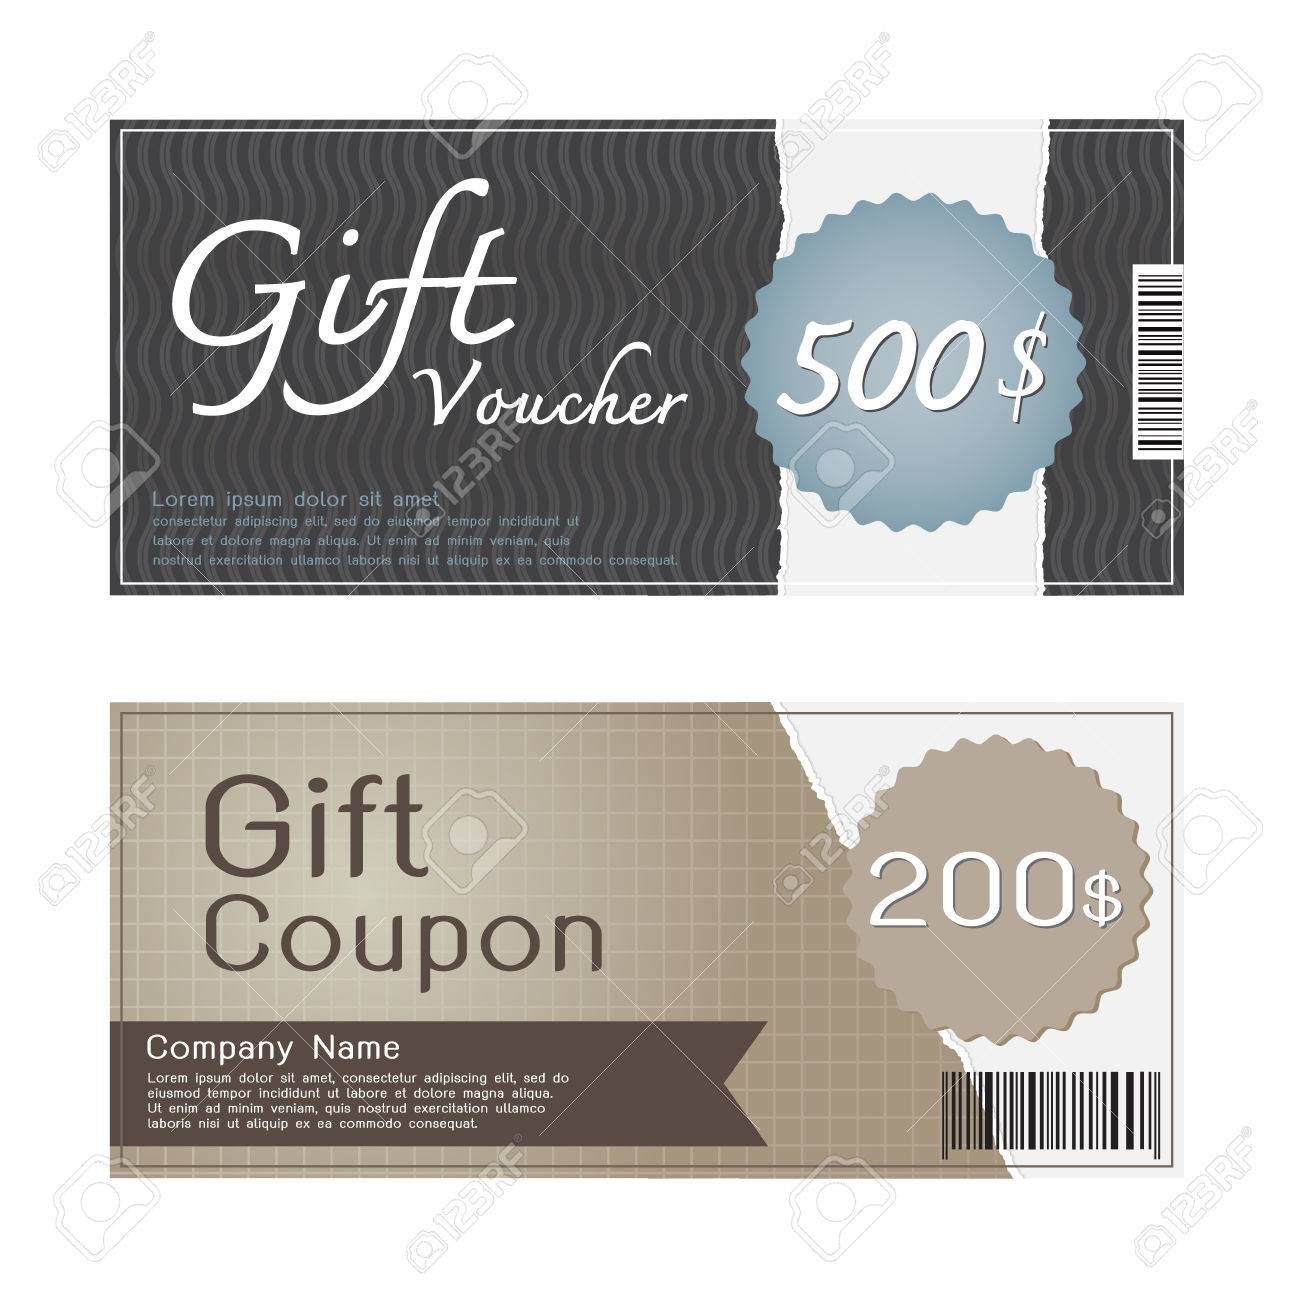 Gift Voucher And Coupon Templates Design Royalty Free Cliparts ...